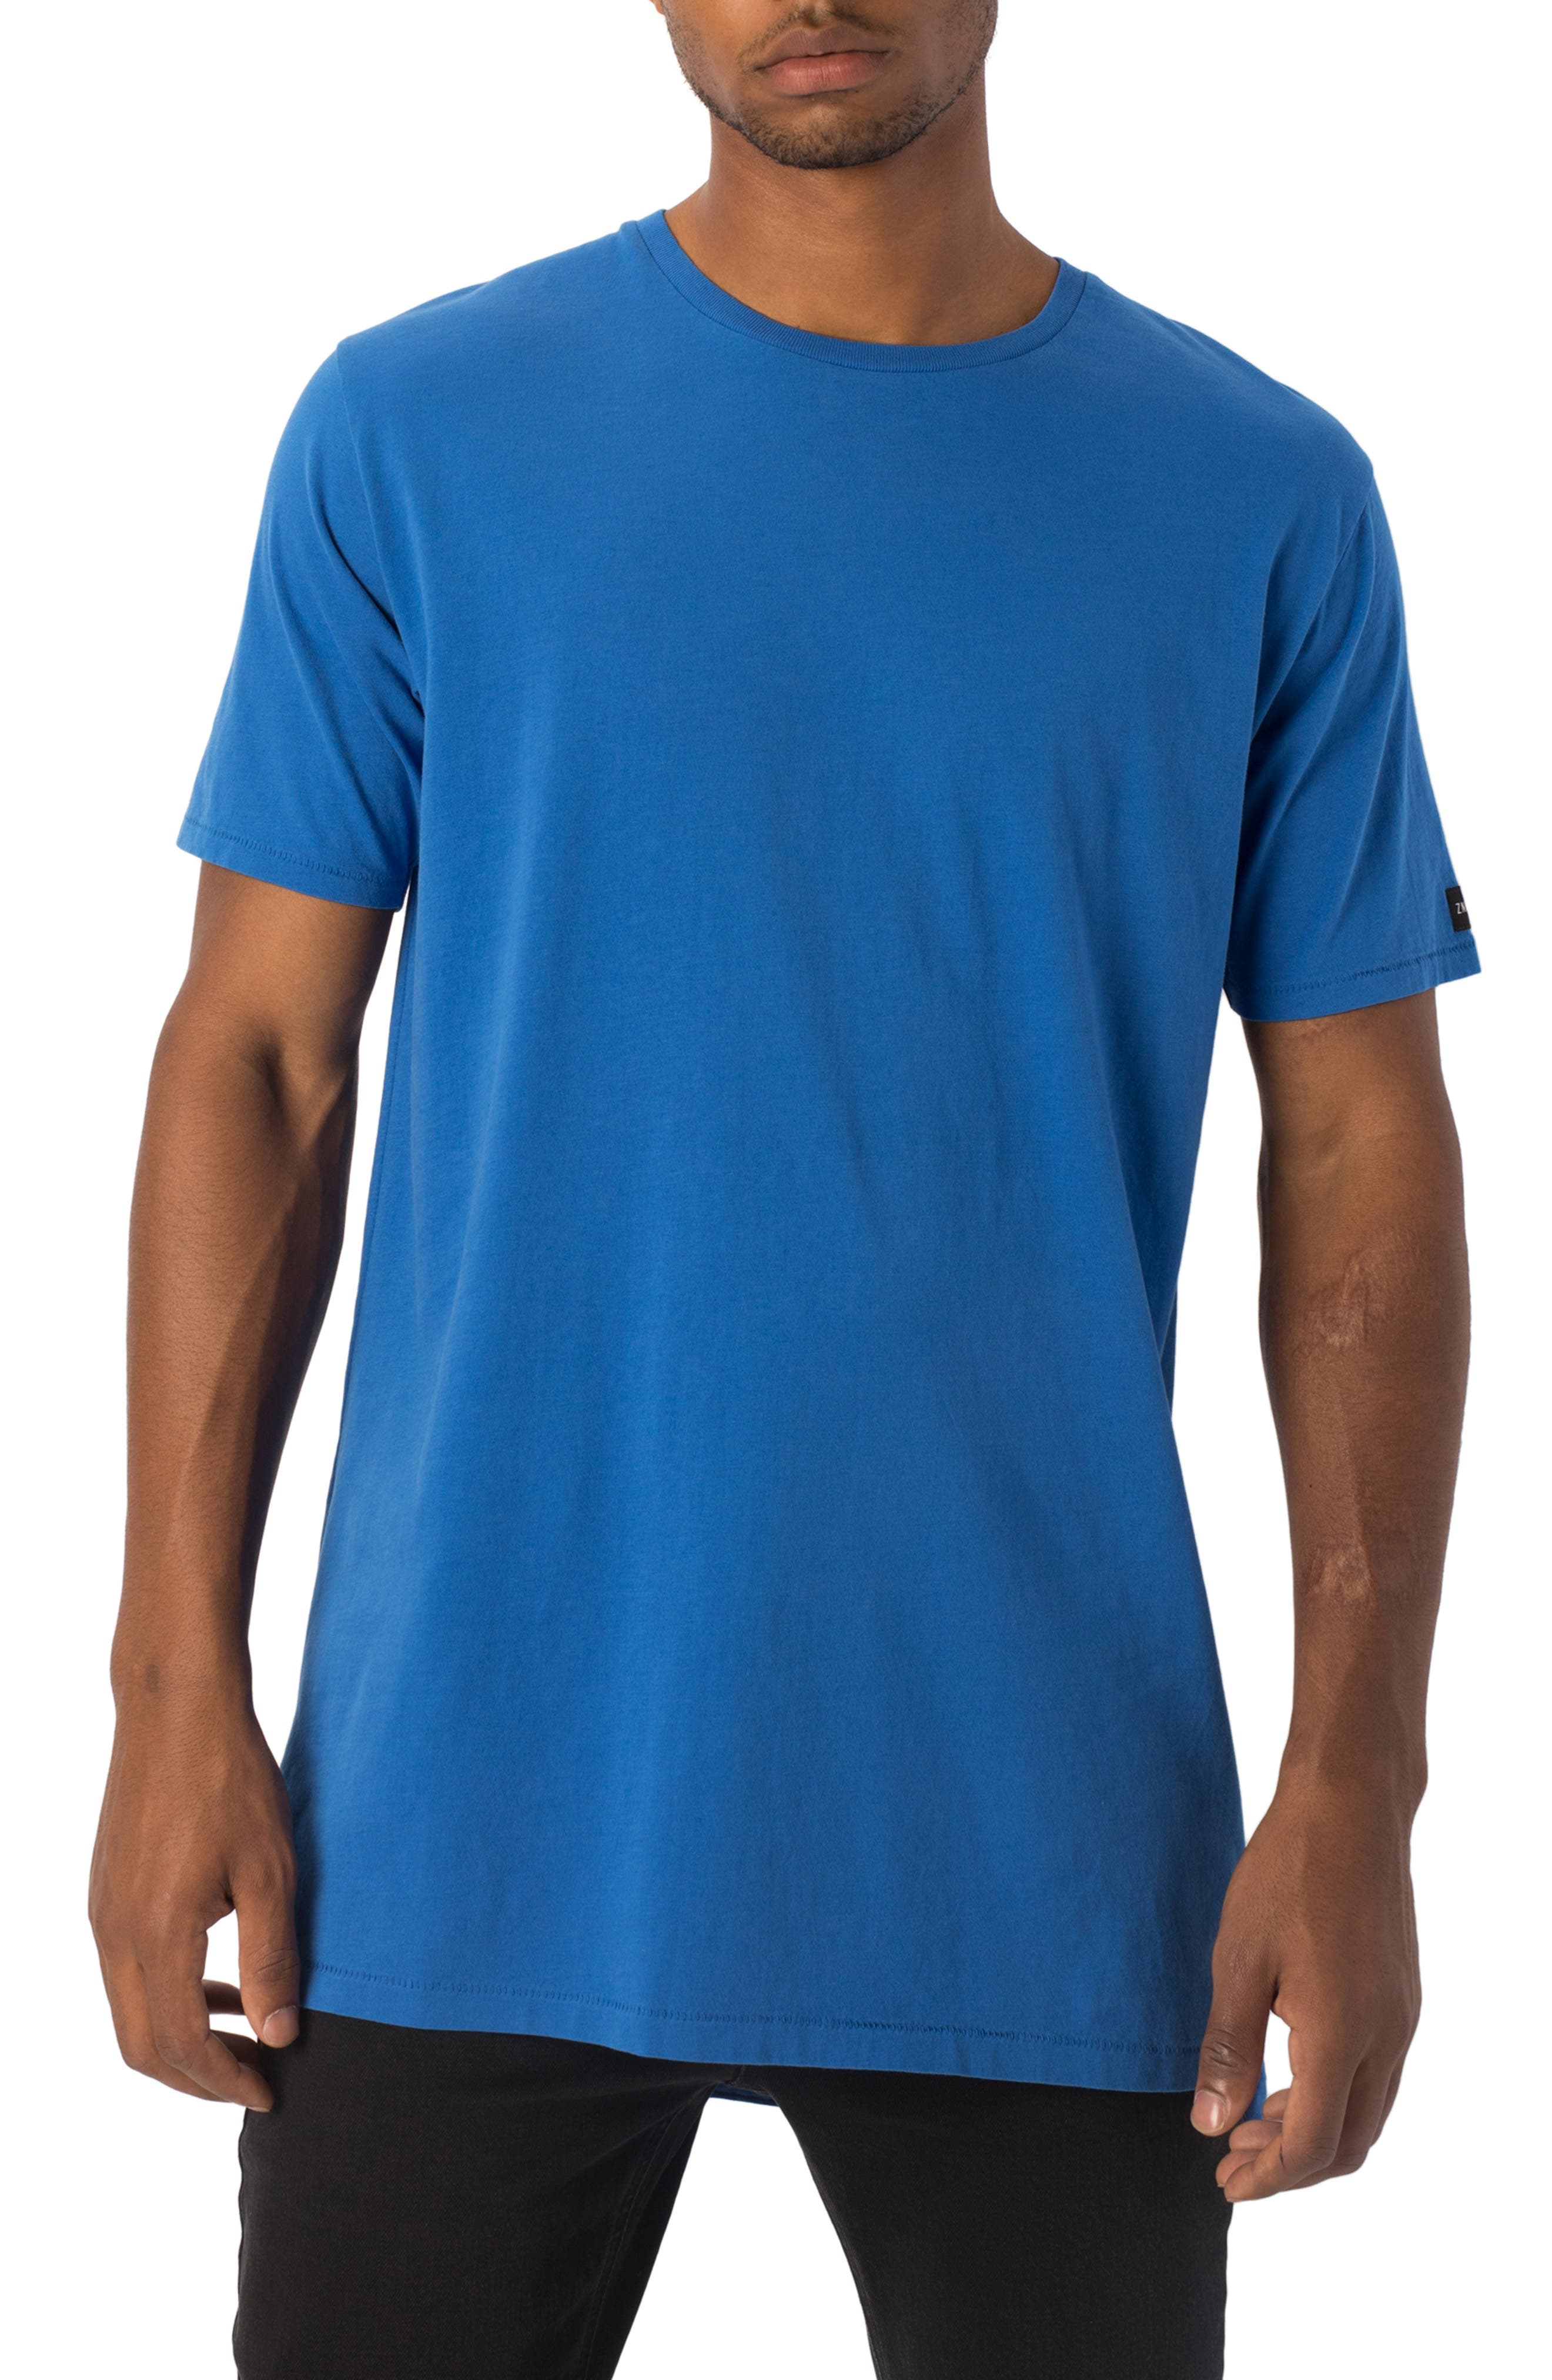 ZANEROBE Flintlock T-Shirt, Main, color, 403